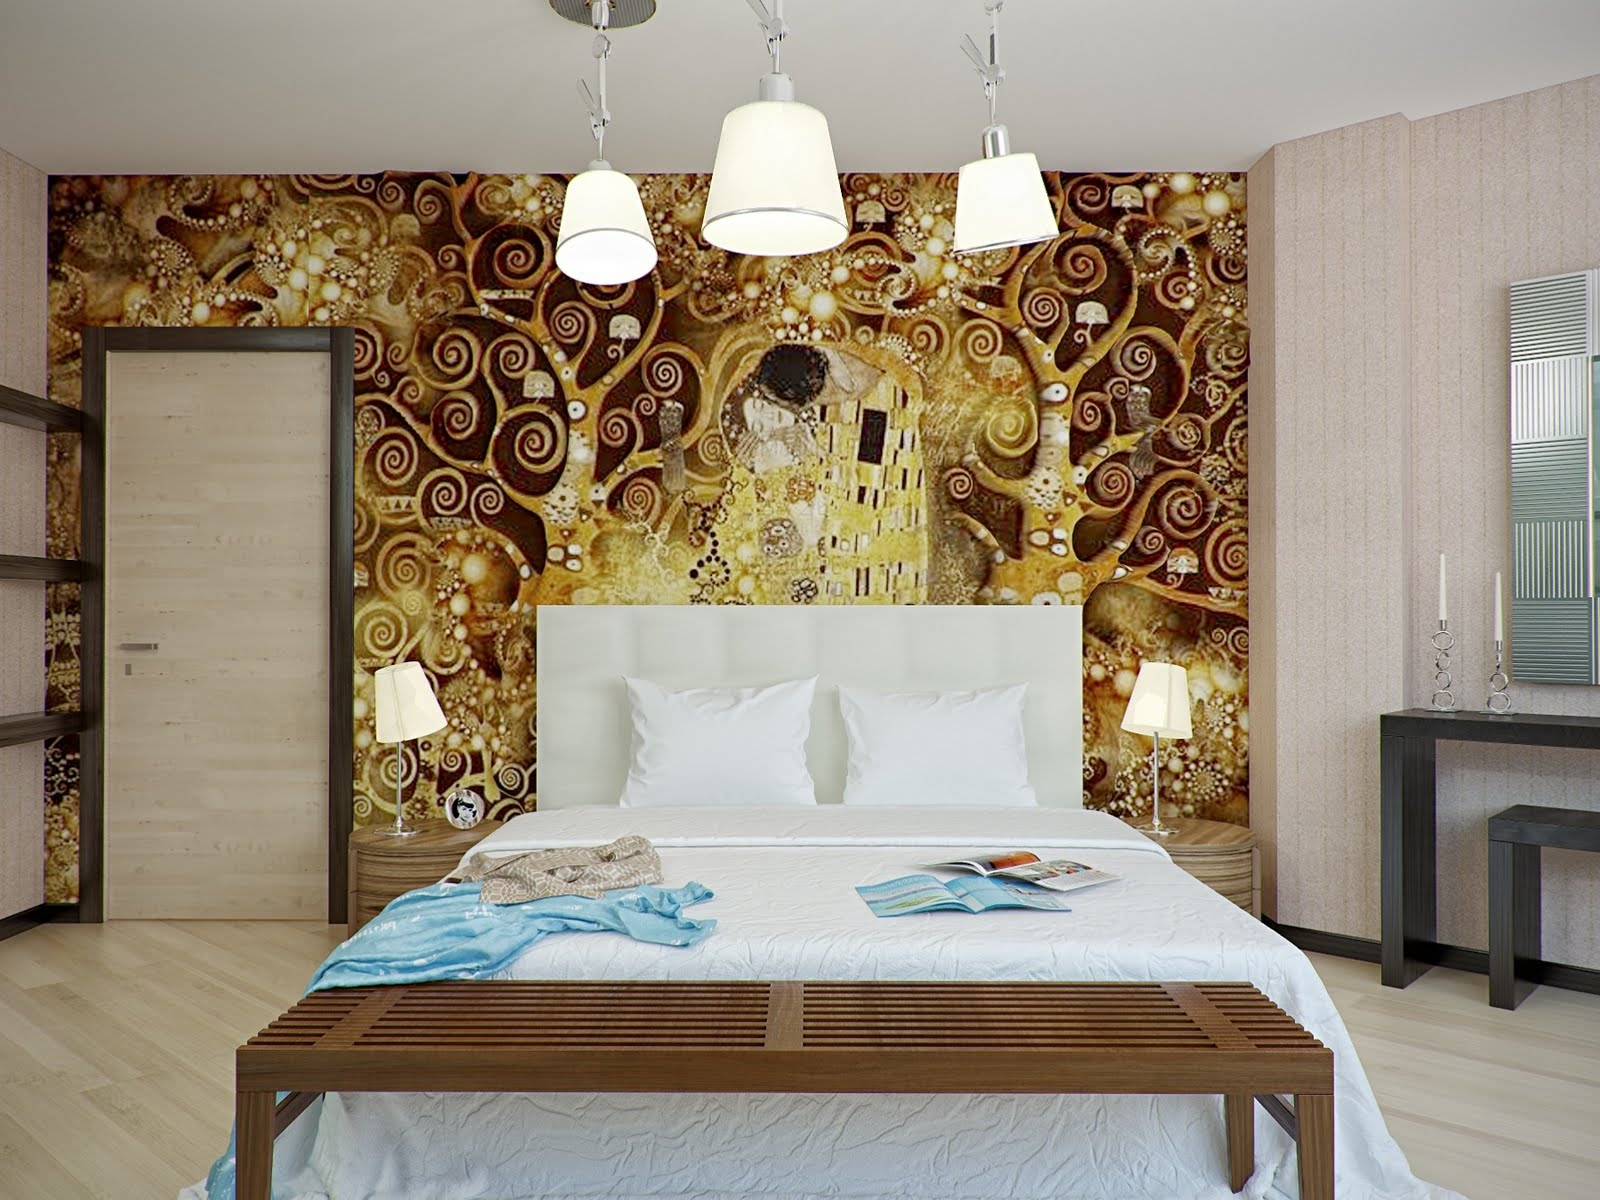 Bedroom Ideas with Gold Walls 1600 x 1200